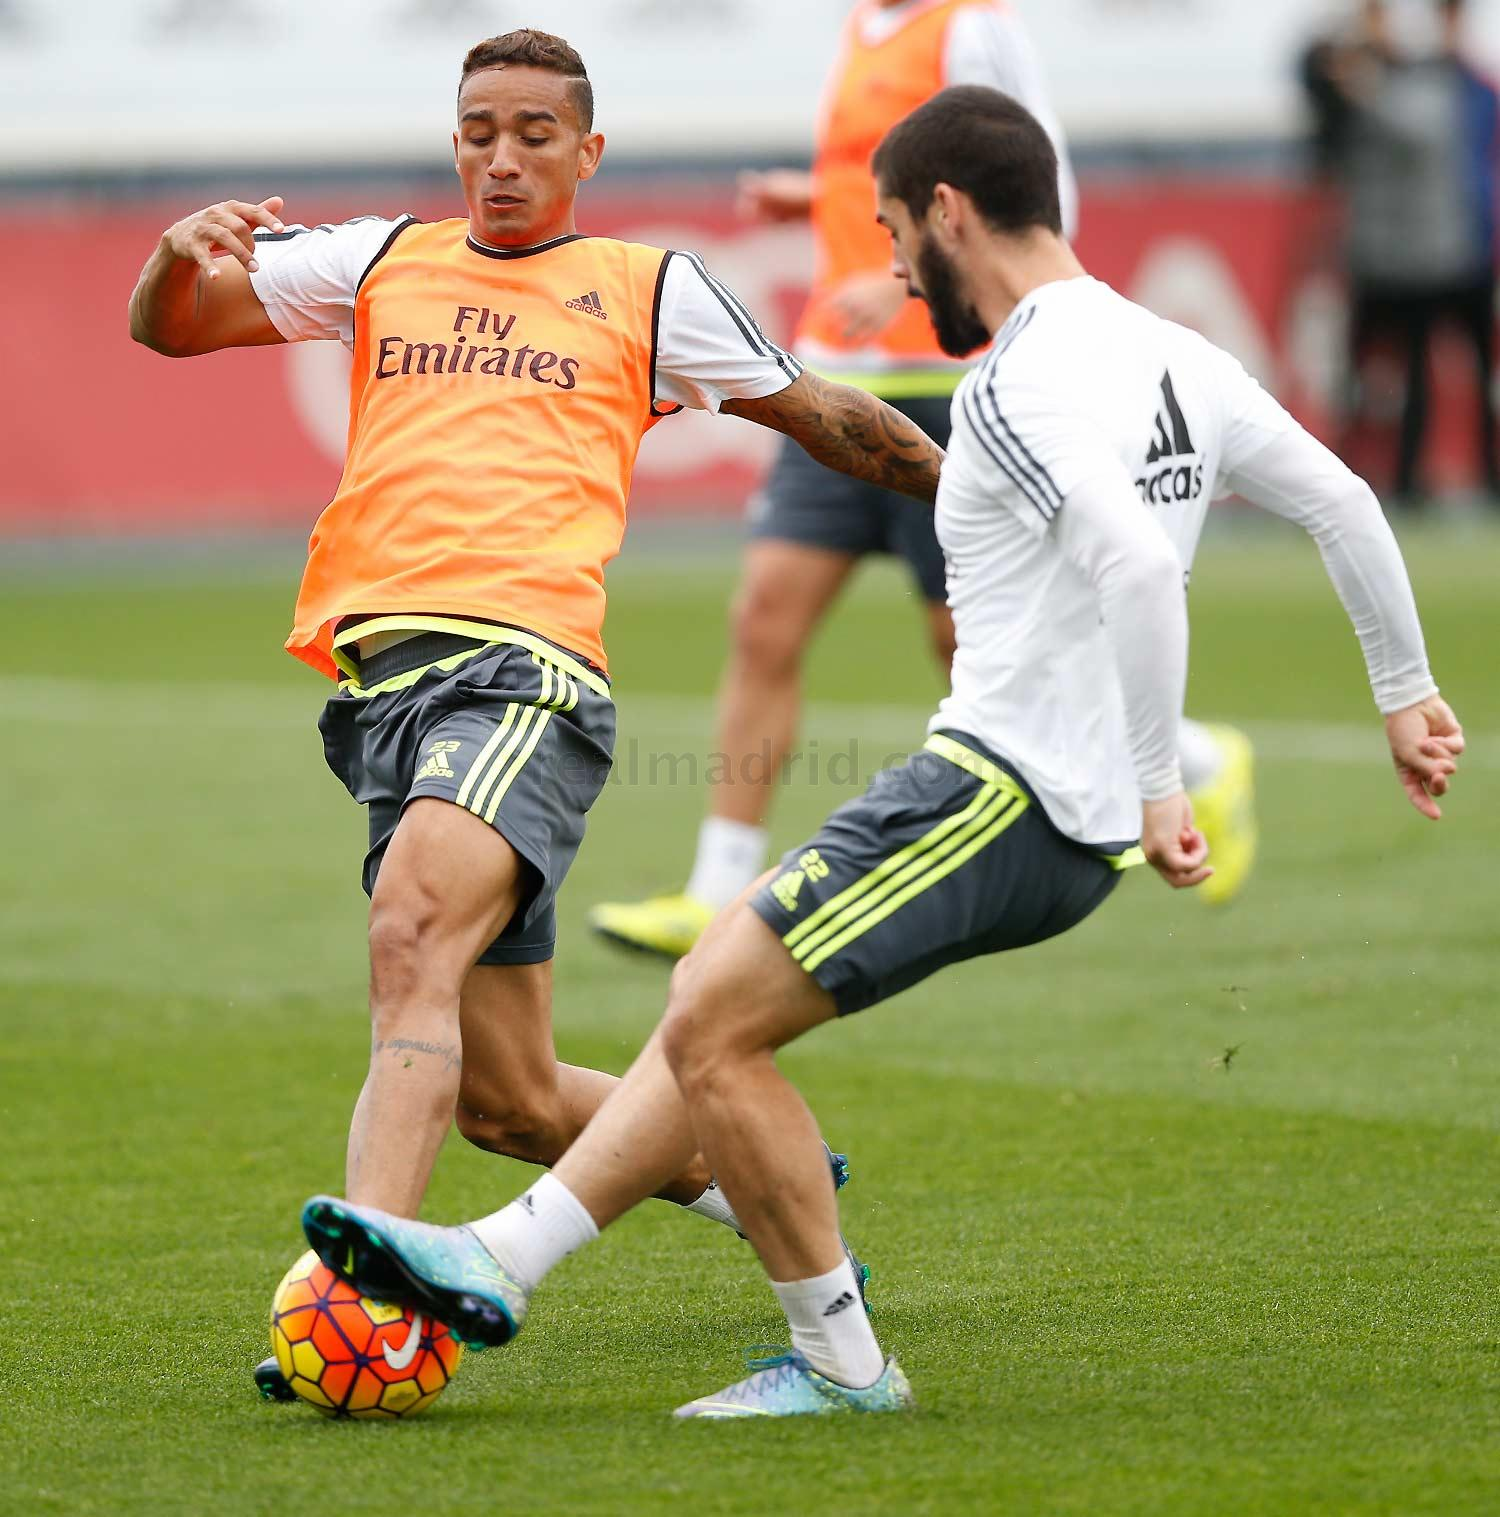 Real Madrid - Entrenamiento del Real Madrid - 29-10-2015